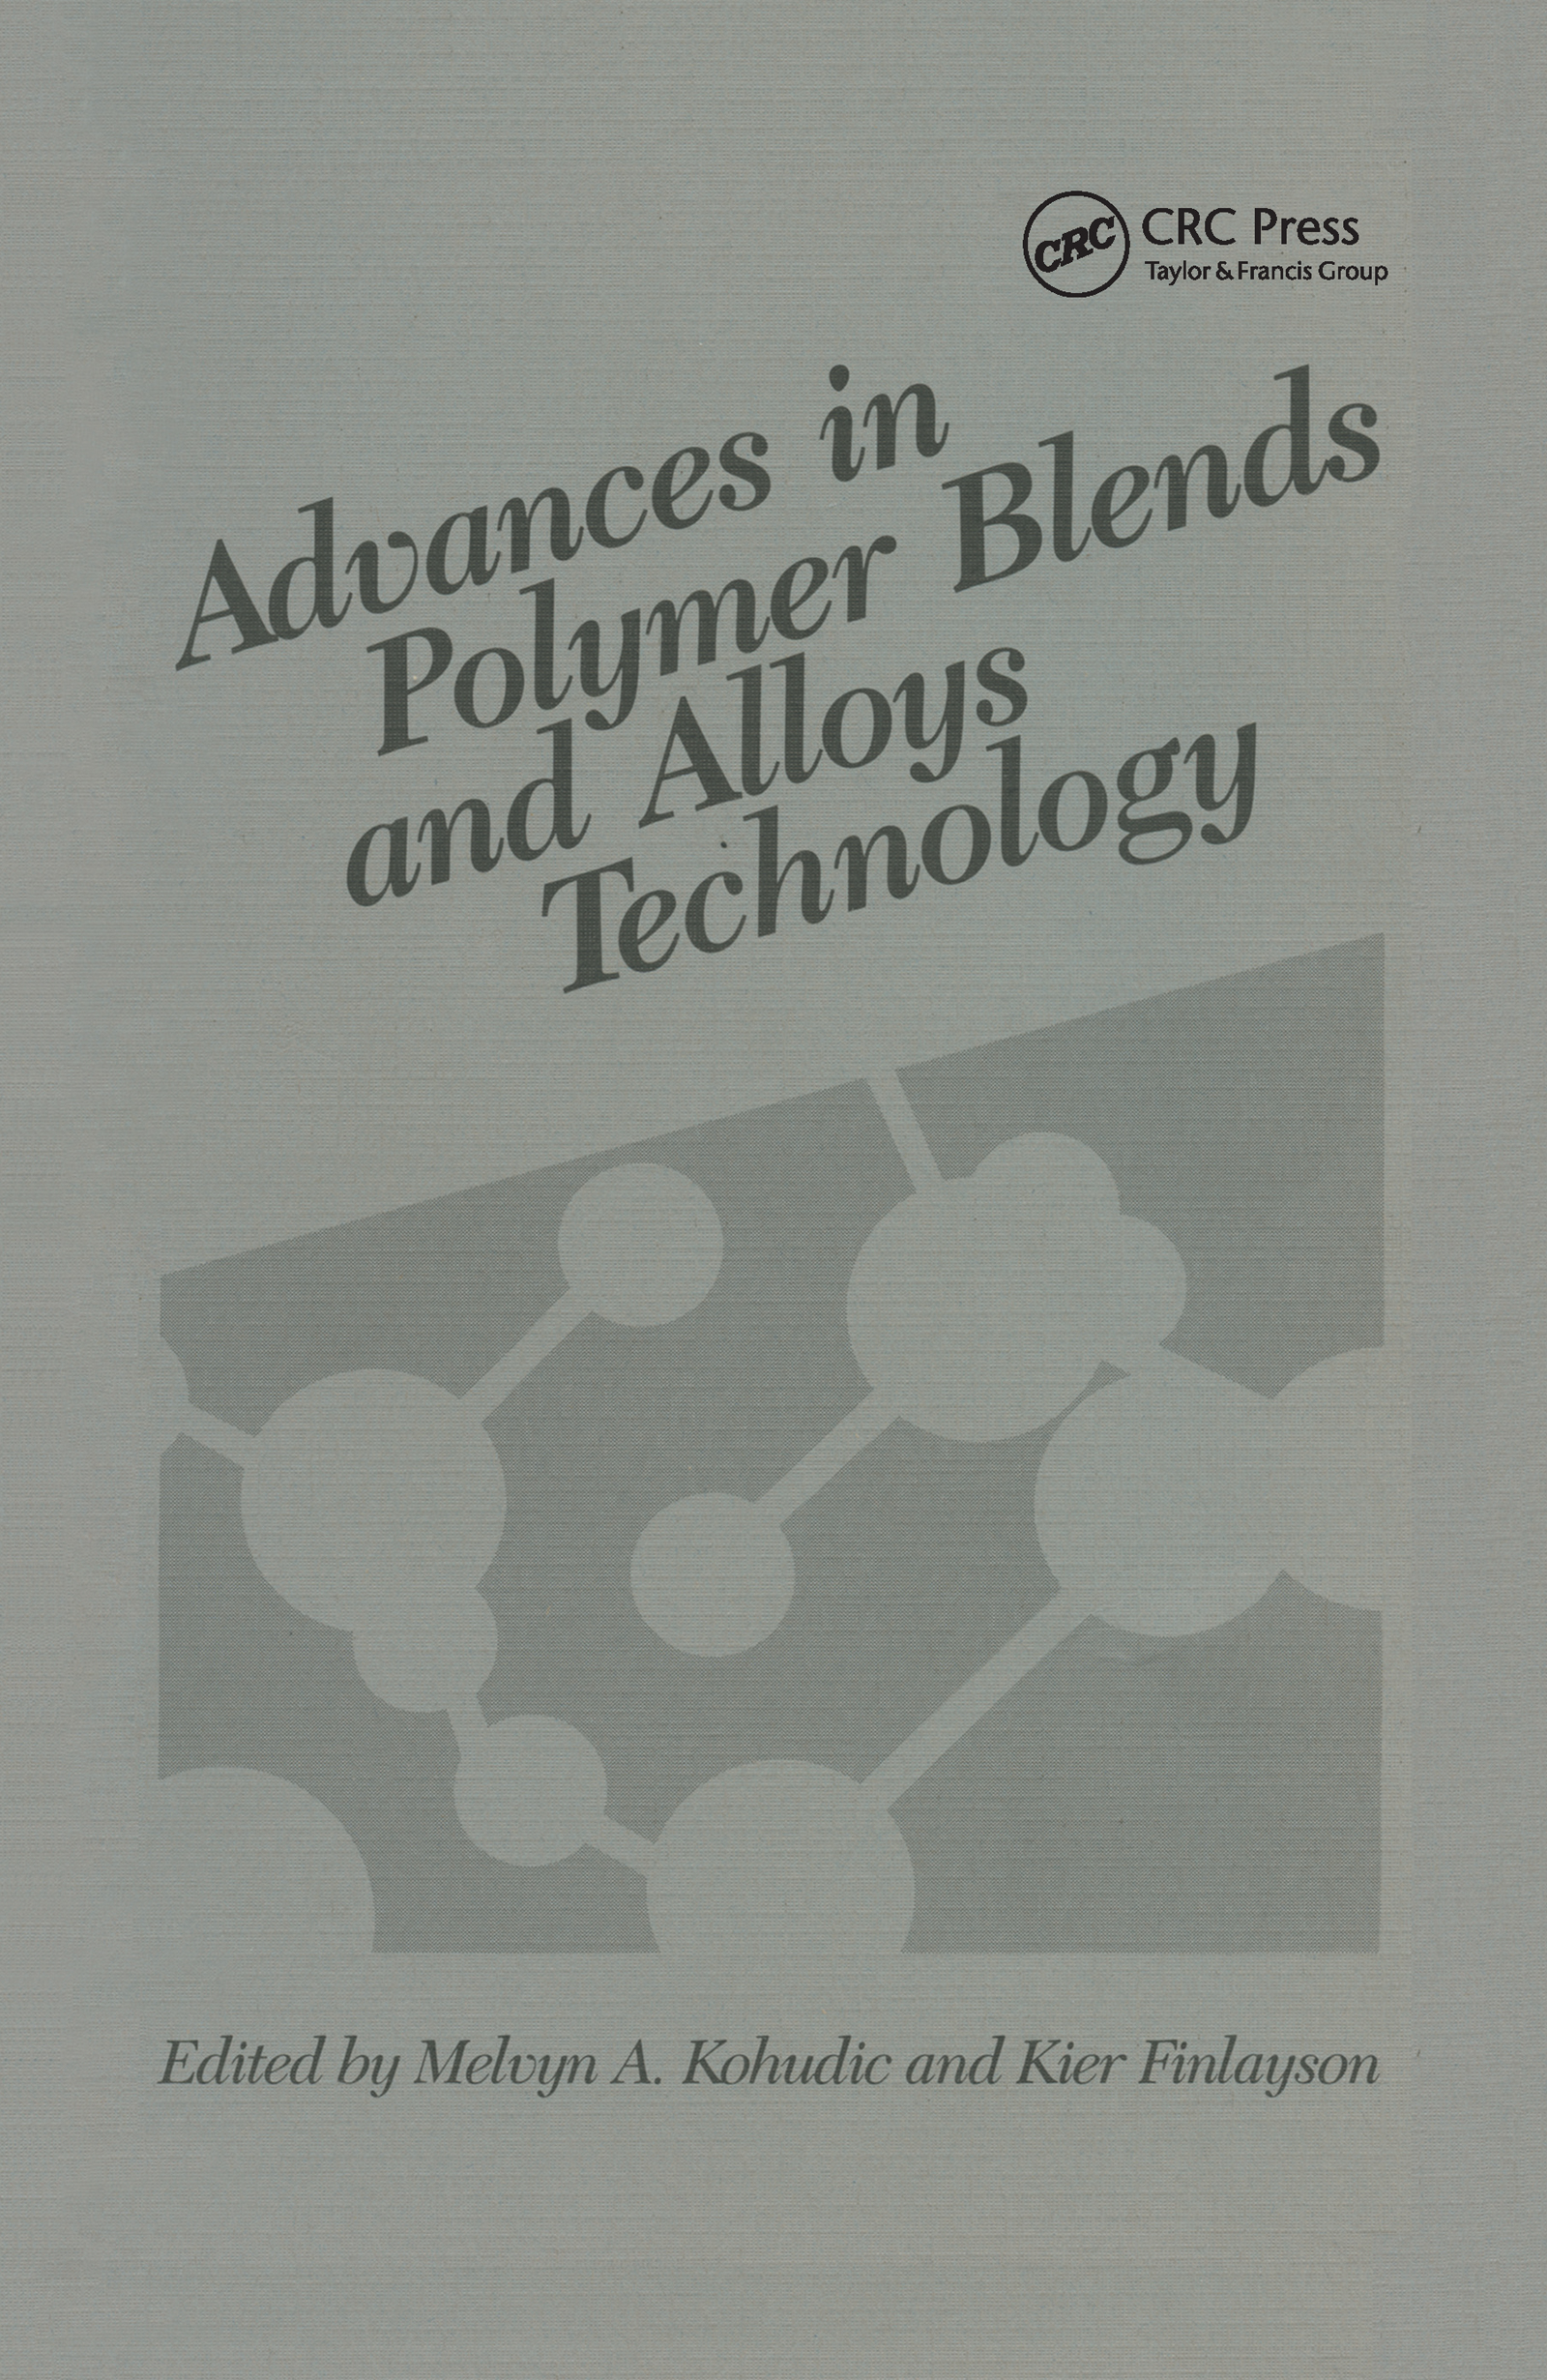 Advances in Polymer Blends and Alloys Technology, Volume II